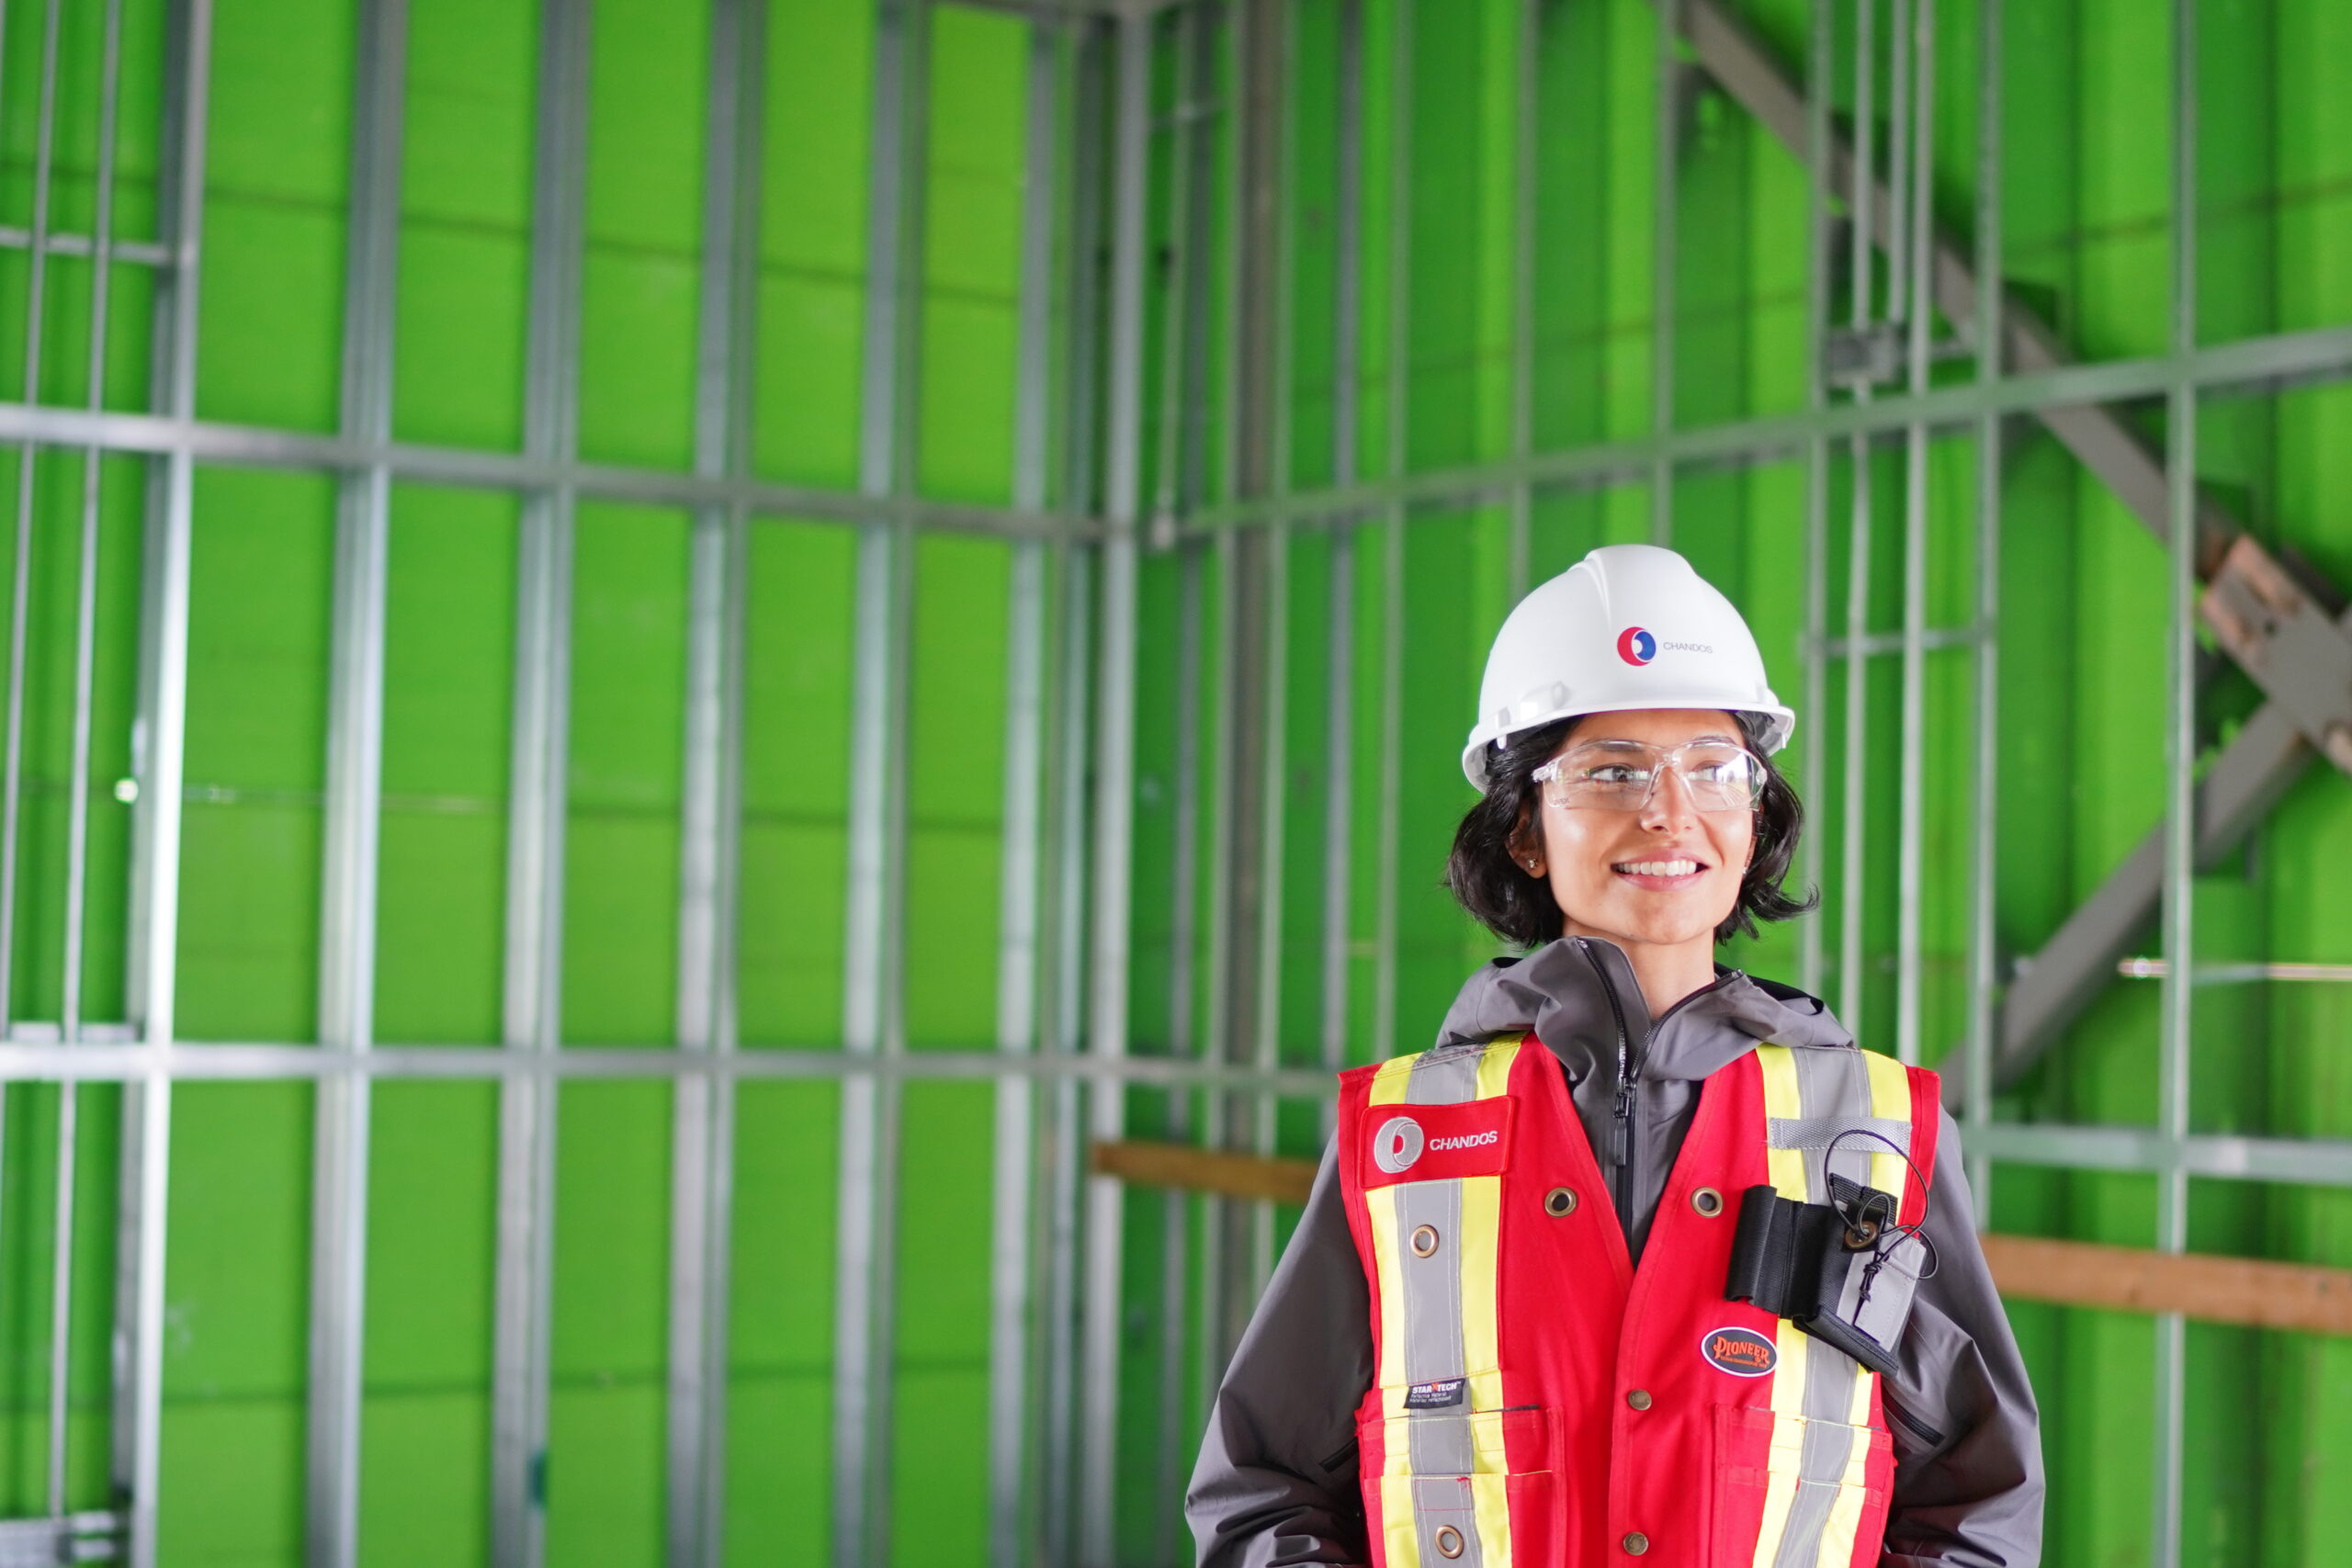 Chandos Construction is a purpose business committed to social procurement as a powerful tool to shape healthy communities and create impact. This includes diversity in their supply chain and hiring as pictured by the female construction worker in the image.